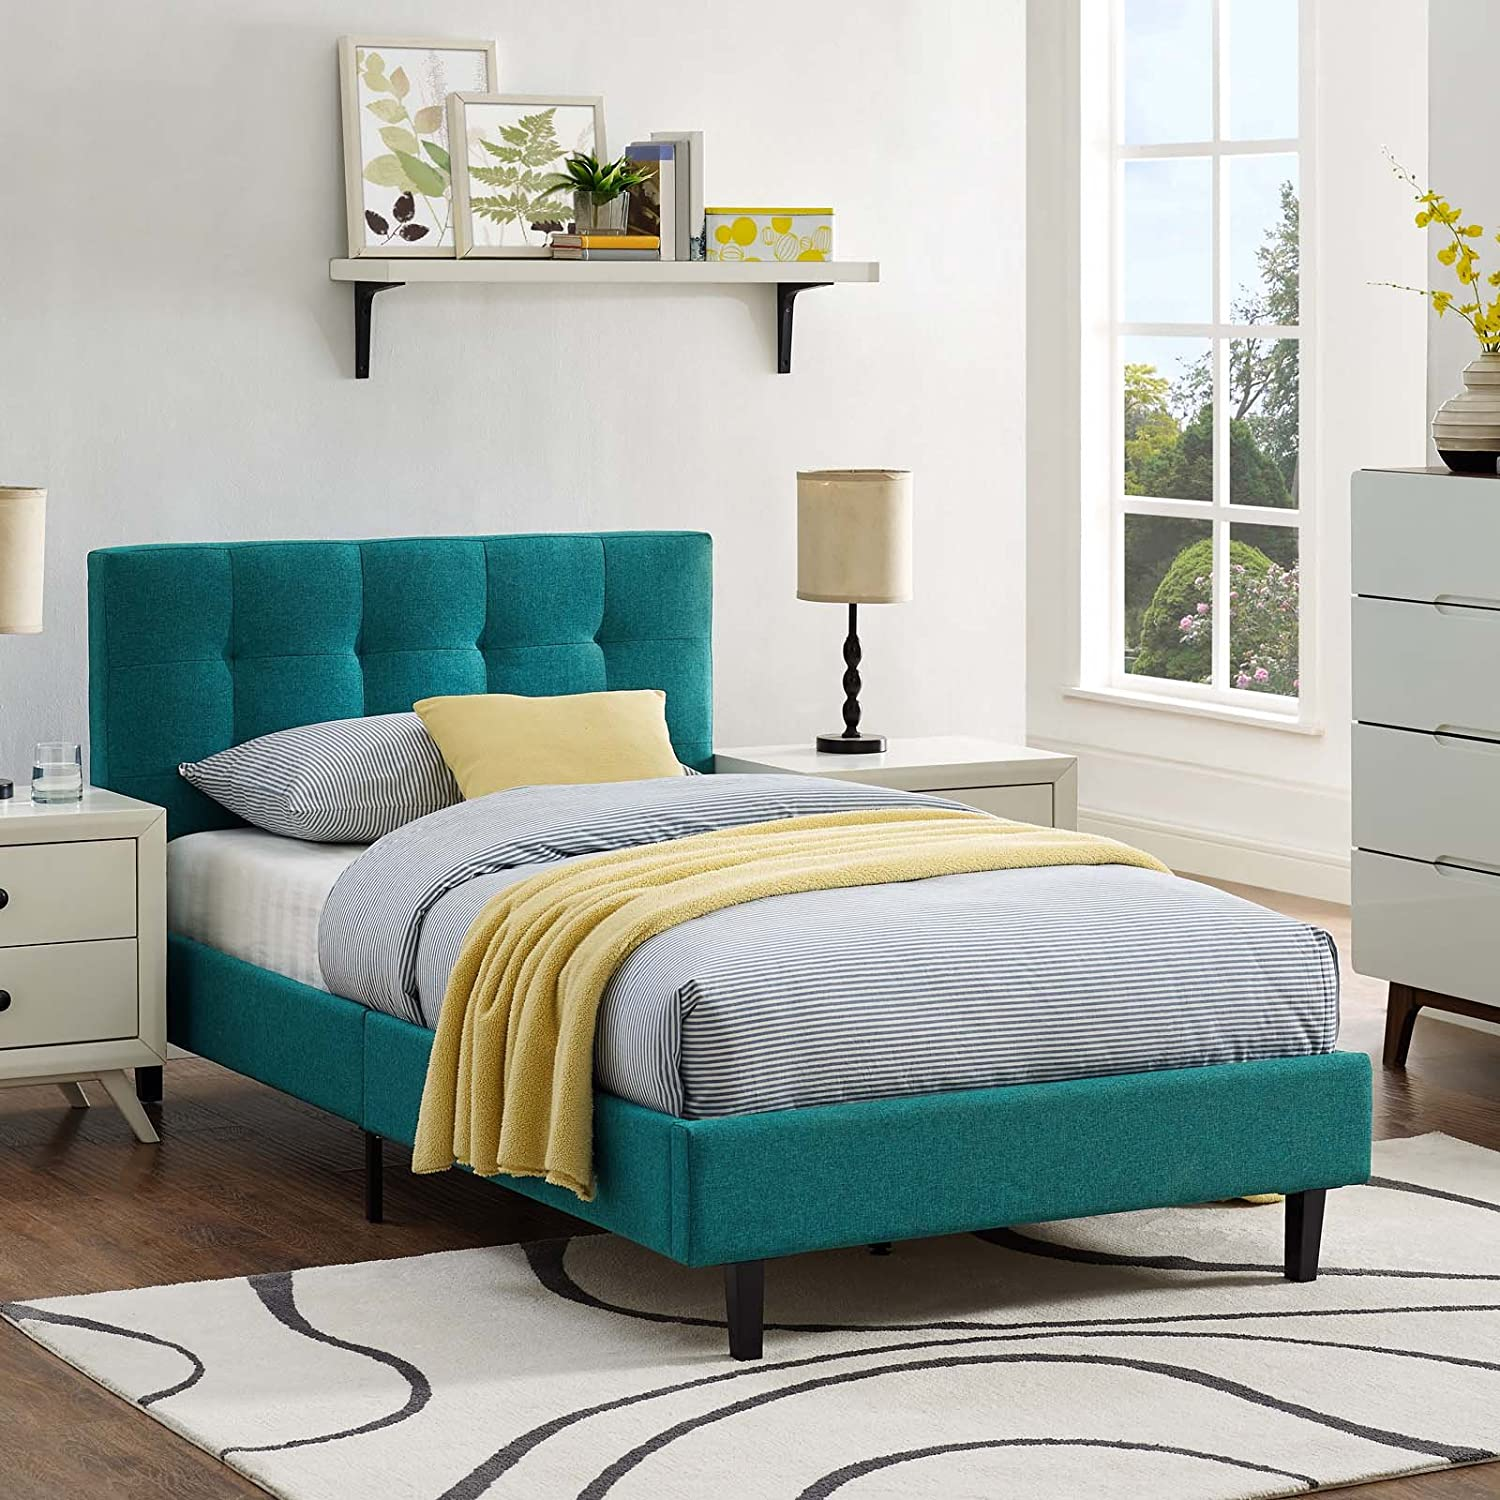 Modway Linnea Upholstered Teal Platform Bed with Wood Slat Support in Twin